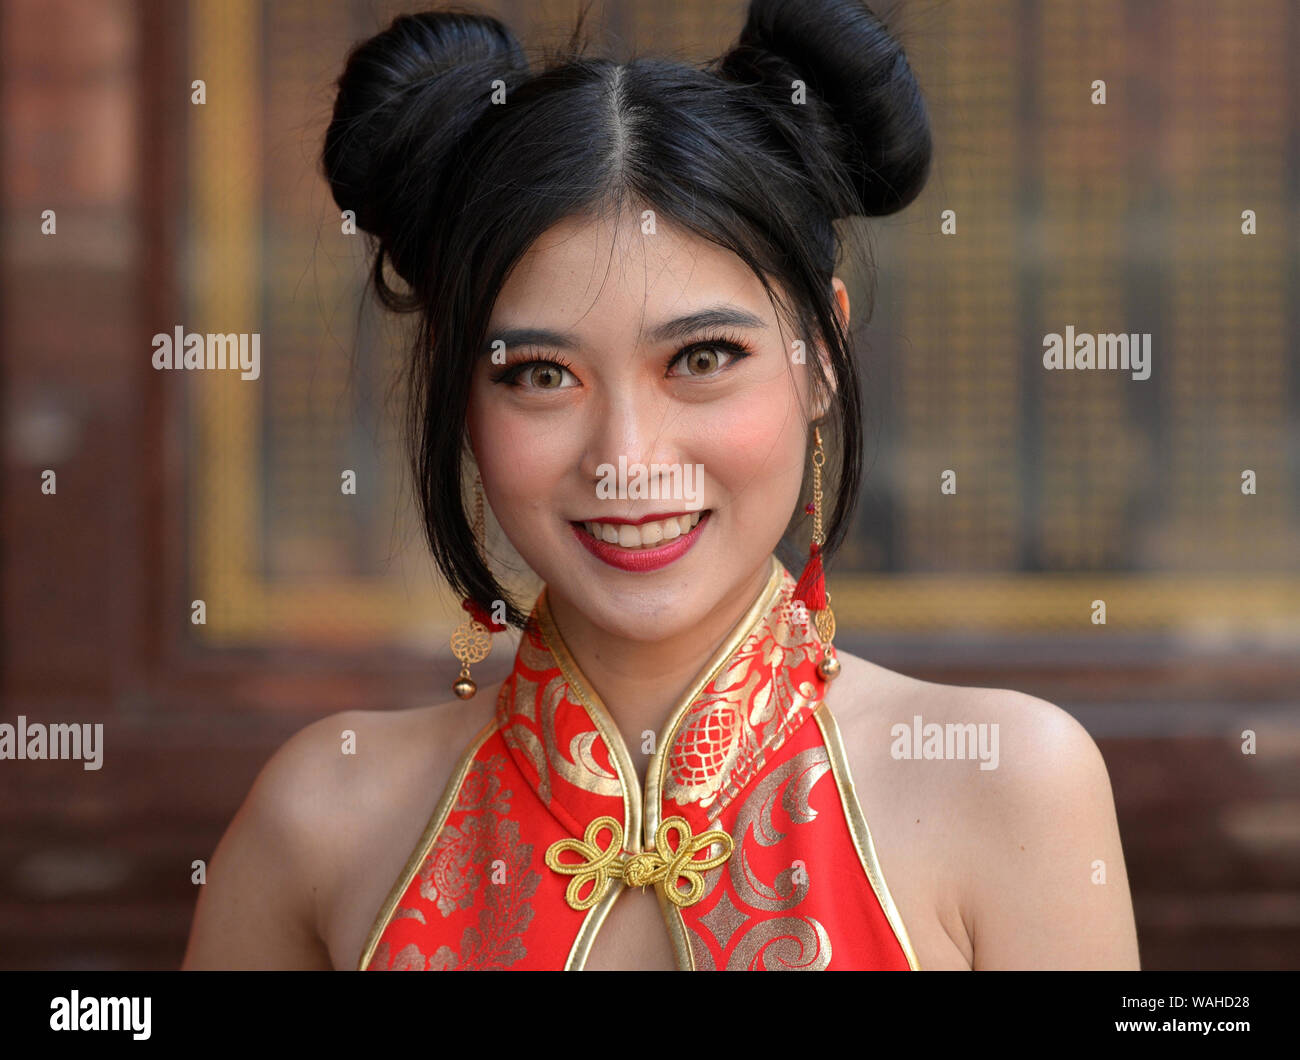 Cute Asian Woman Bun Hair Stock Photos Cute Asian Woman